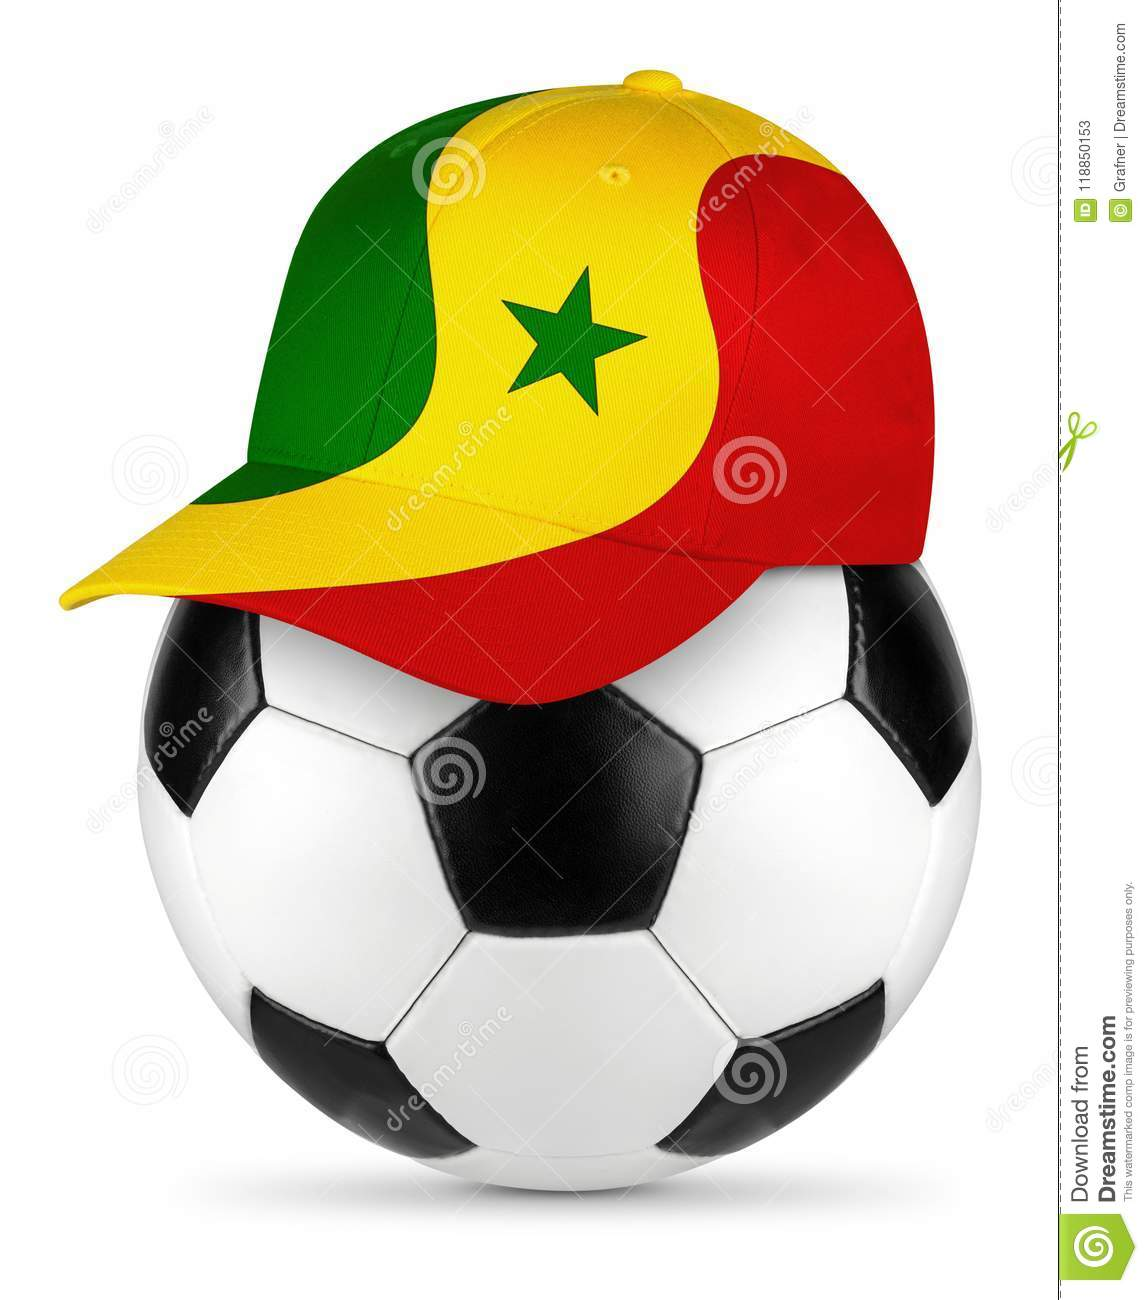 386c164d4c3 Classic black white leather soccer ball senegal Senegalese flag baseball  fan cap isolated background sport football concept